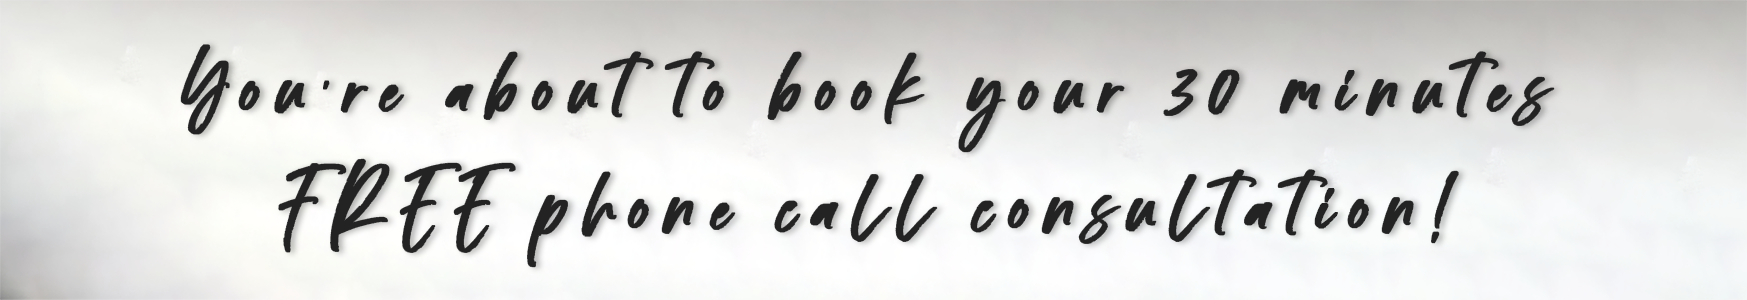 you-are-about-to-book-your-30-minutes-FREE-phone-call-consultation!